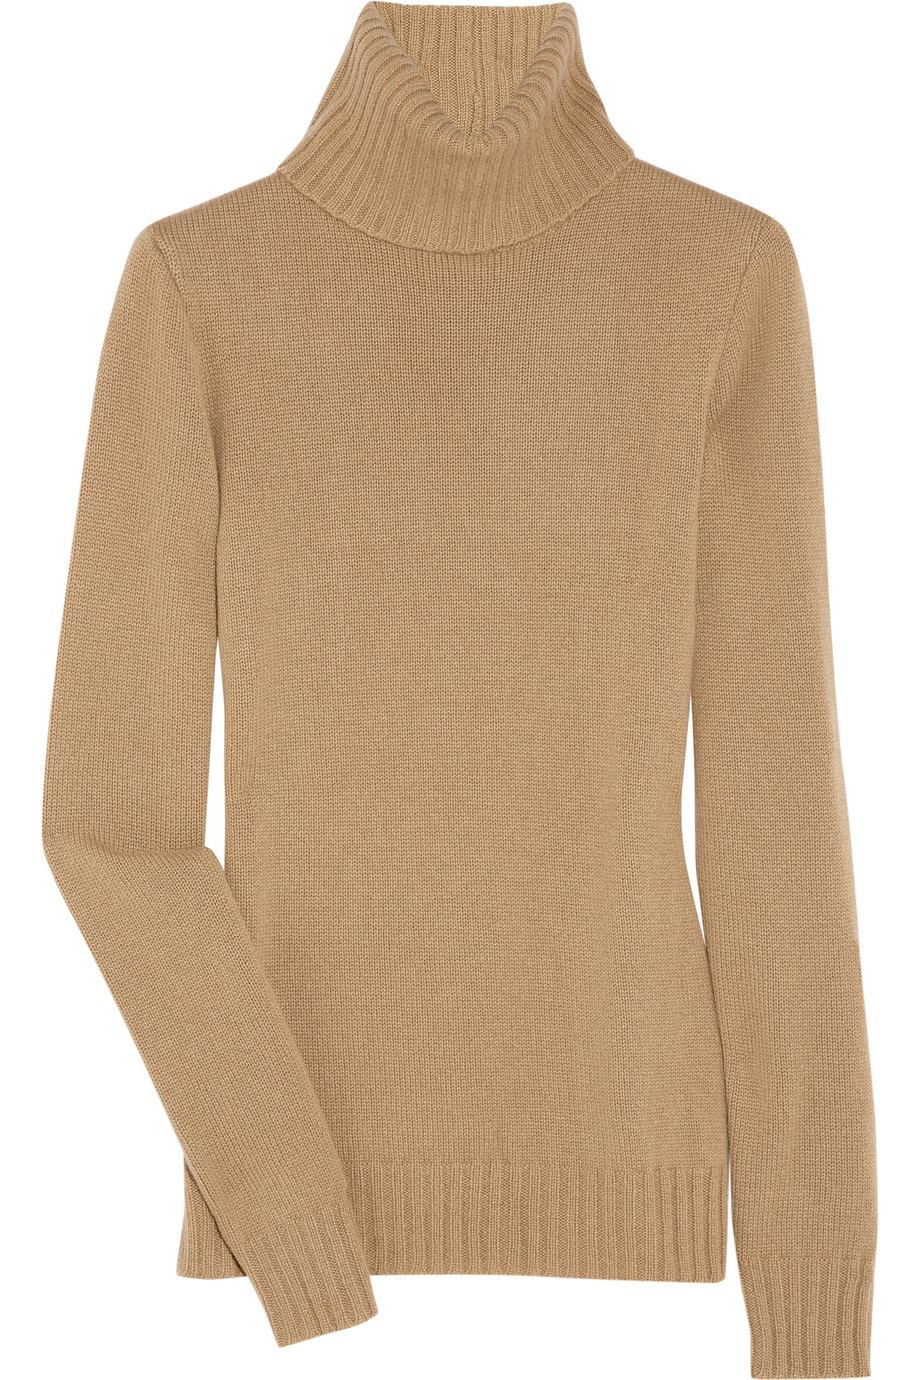 Lauren Collection Cashmere turtleneck sweater - 80% Off Now at THE ...